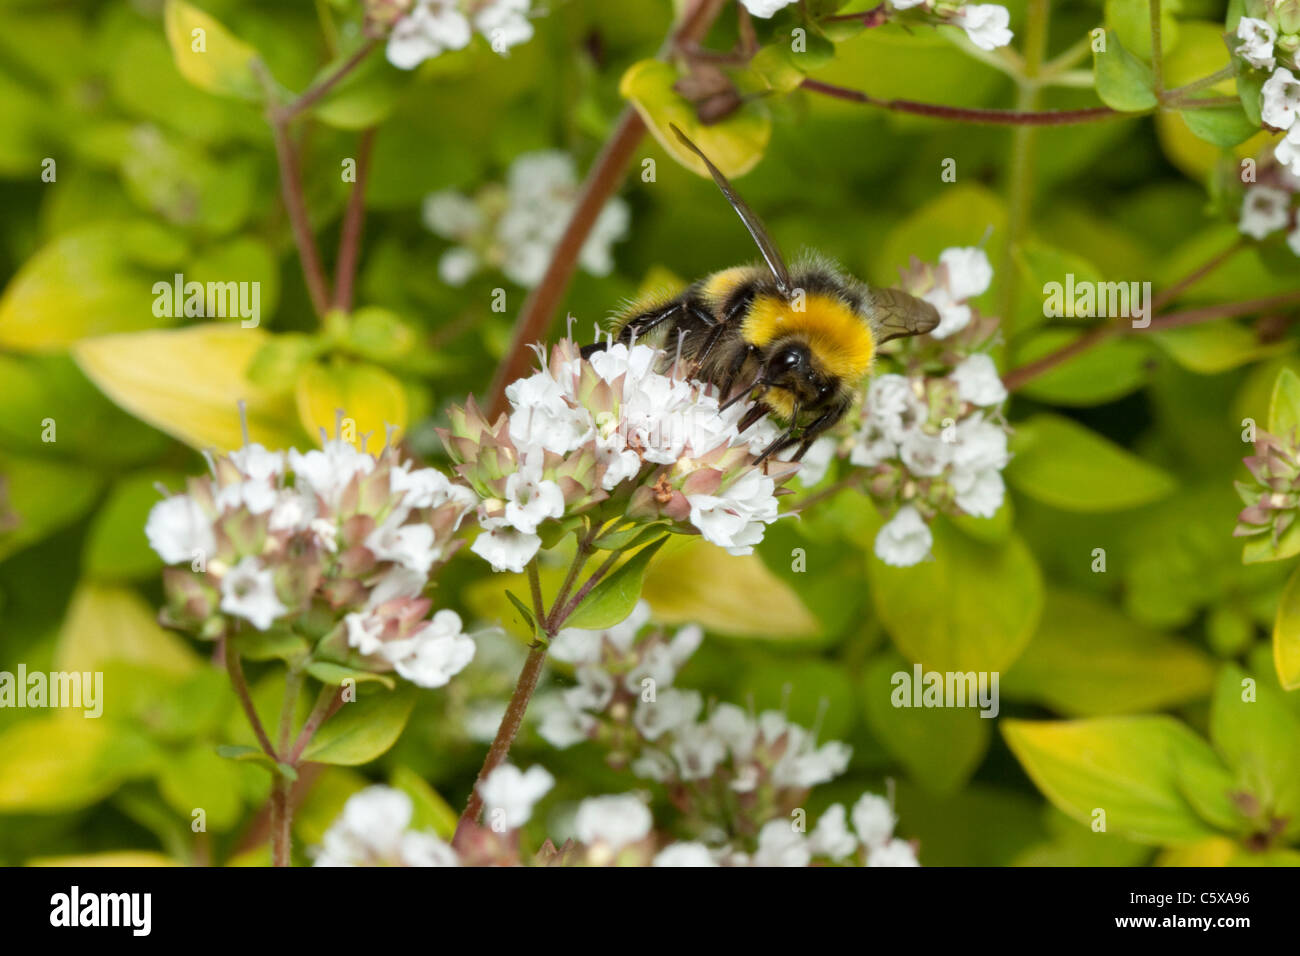 Bumble bee on a marjoram plant in a garden in Kent, England, UK - Stock Image